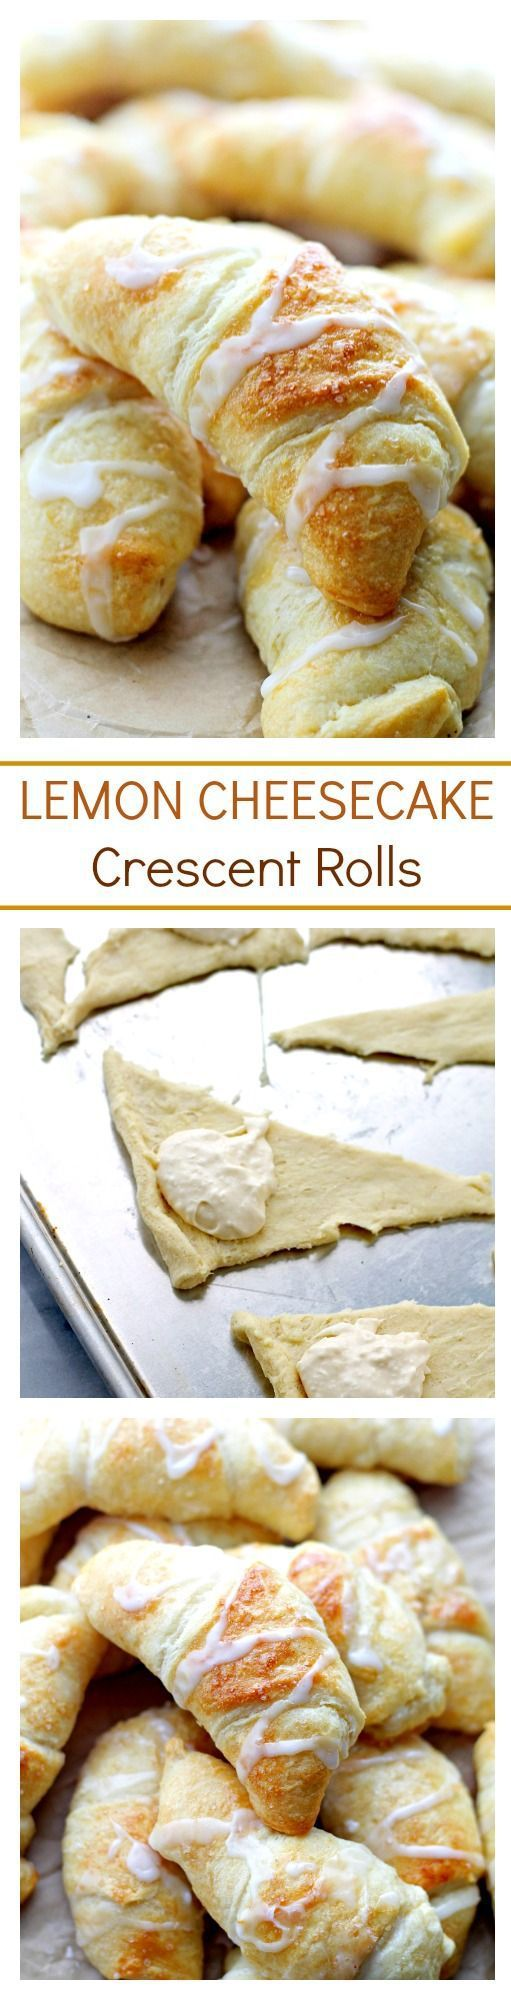 Lemon Cheesecake Crescent Rolls Recipe via Diethood - Super easy and incredibly soft Crescent Rolls filled with a sweet and delicious lemon and cream cheese mixture. The BEST Easy Lemon Desserts and Treats Recipes - Perfect For Easter, Mother's Day Brunch, Bridal or Baby Showers and Pretty Spring and Summer Holiday Party Refreshments!